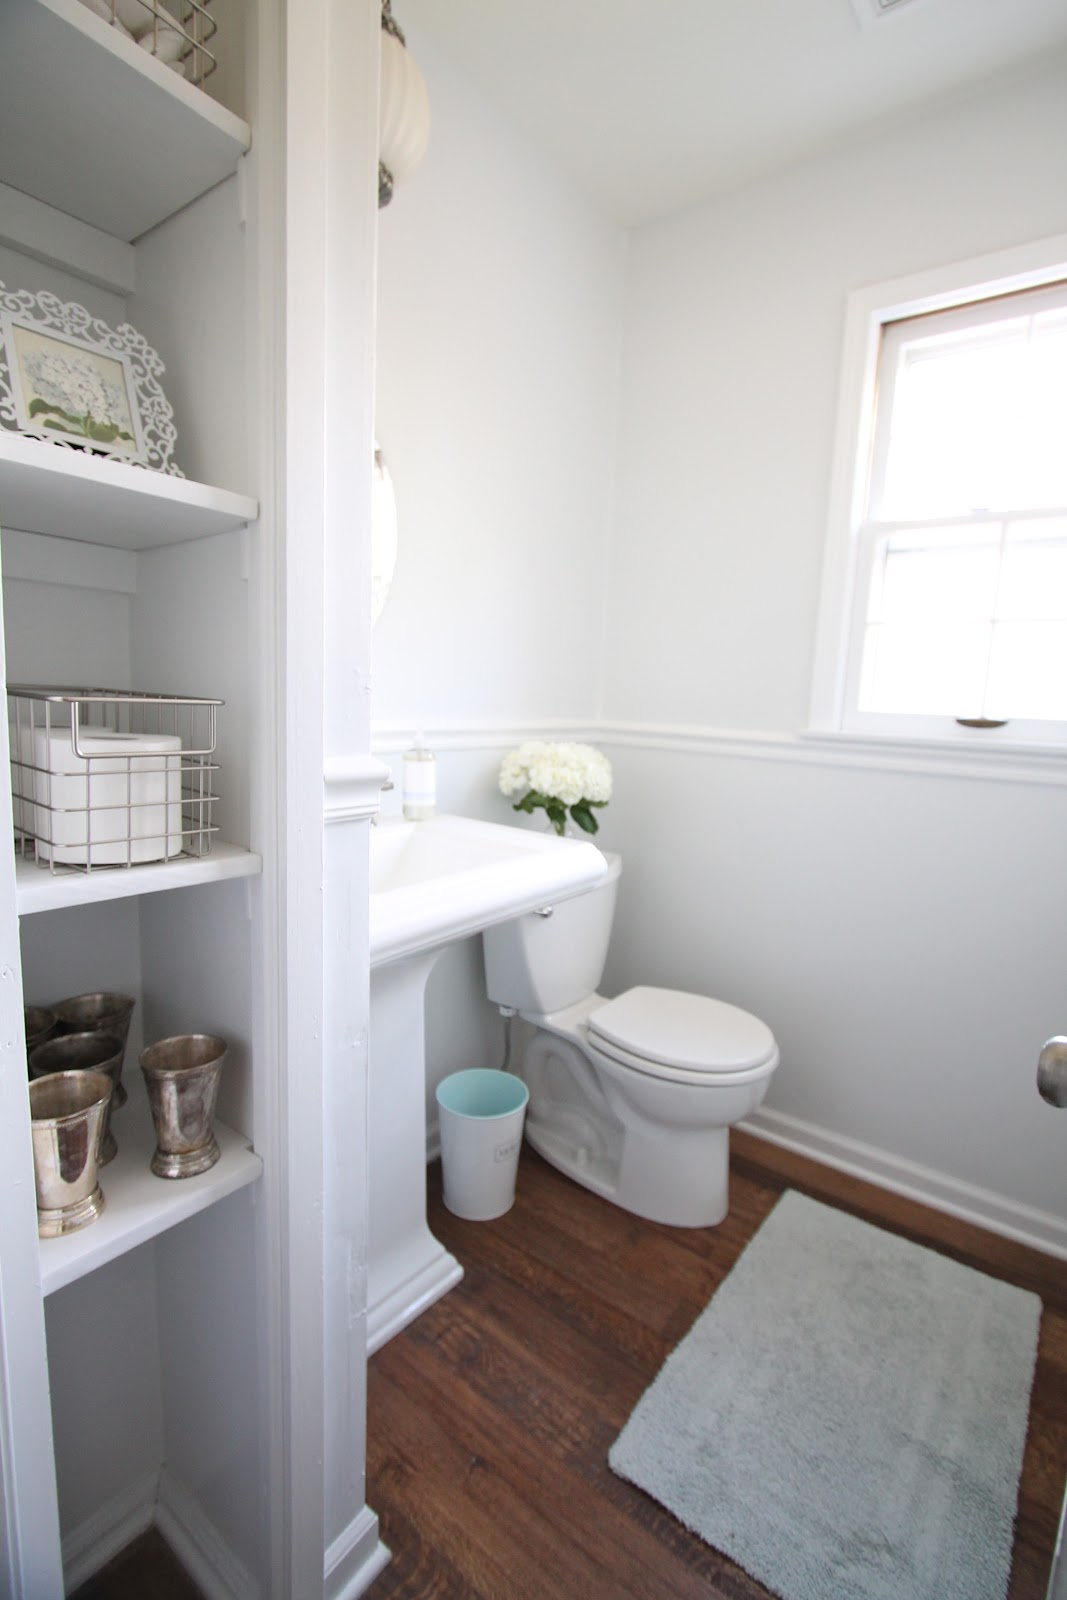 DIY Bathroom Remodel Julie Blanner - How to remodel a bathroom yourself on a budget